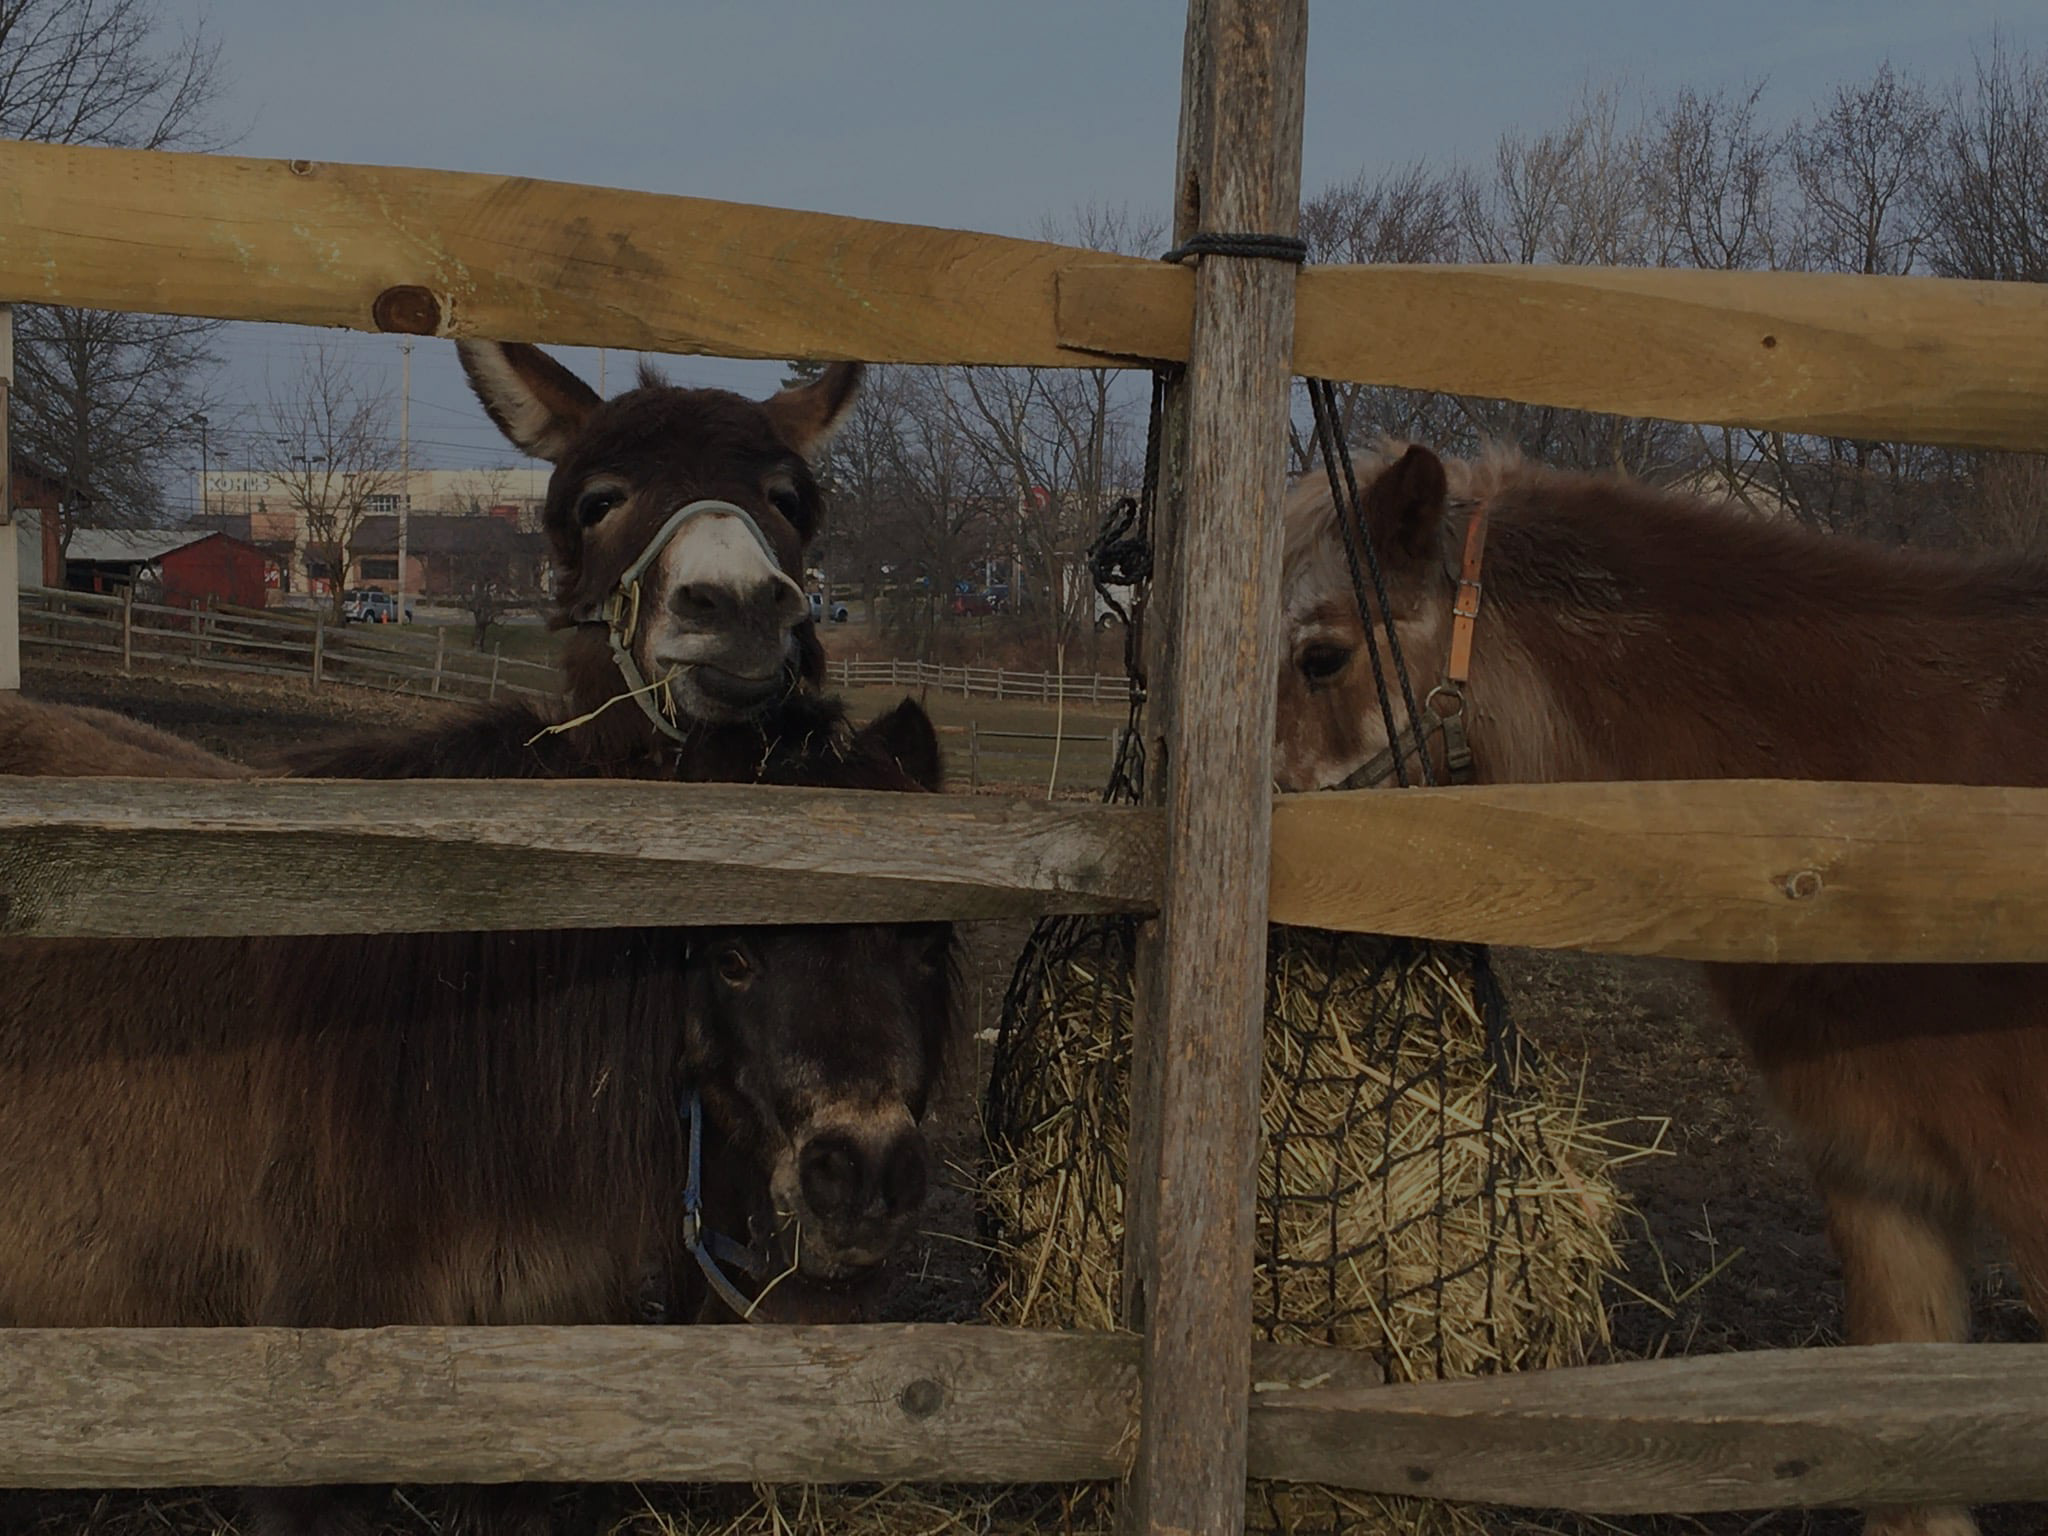 a donkey and two ponies by a fence